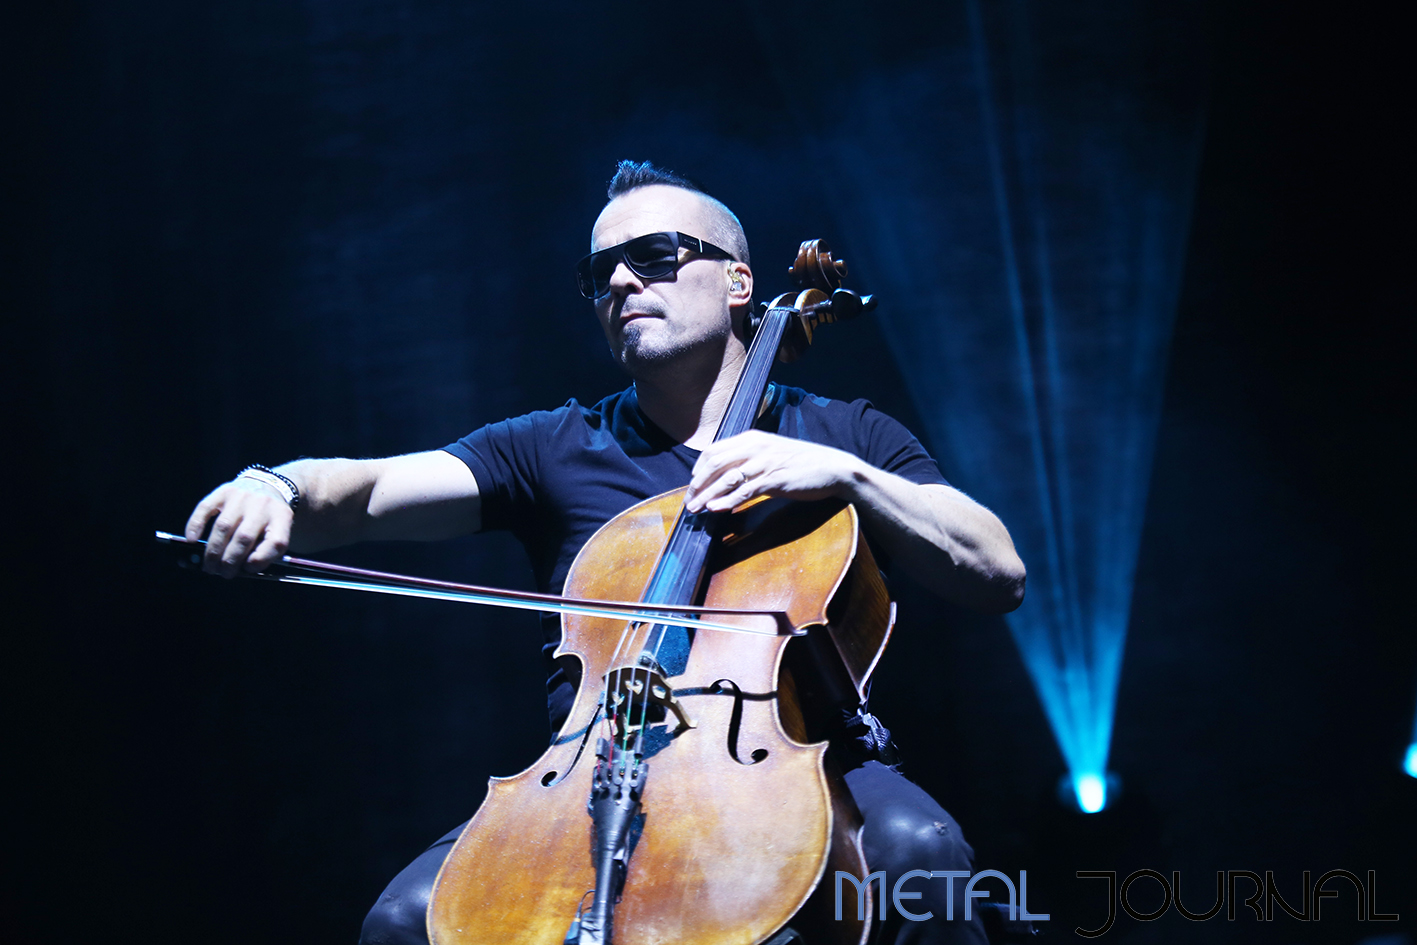 apocalyptica - leyendas del rock 2019 metal journal pic 8